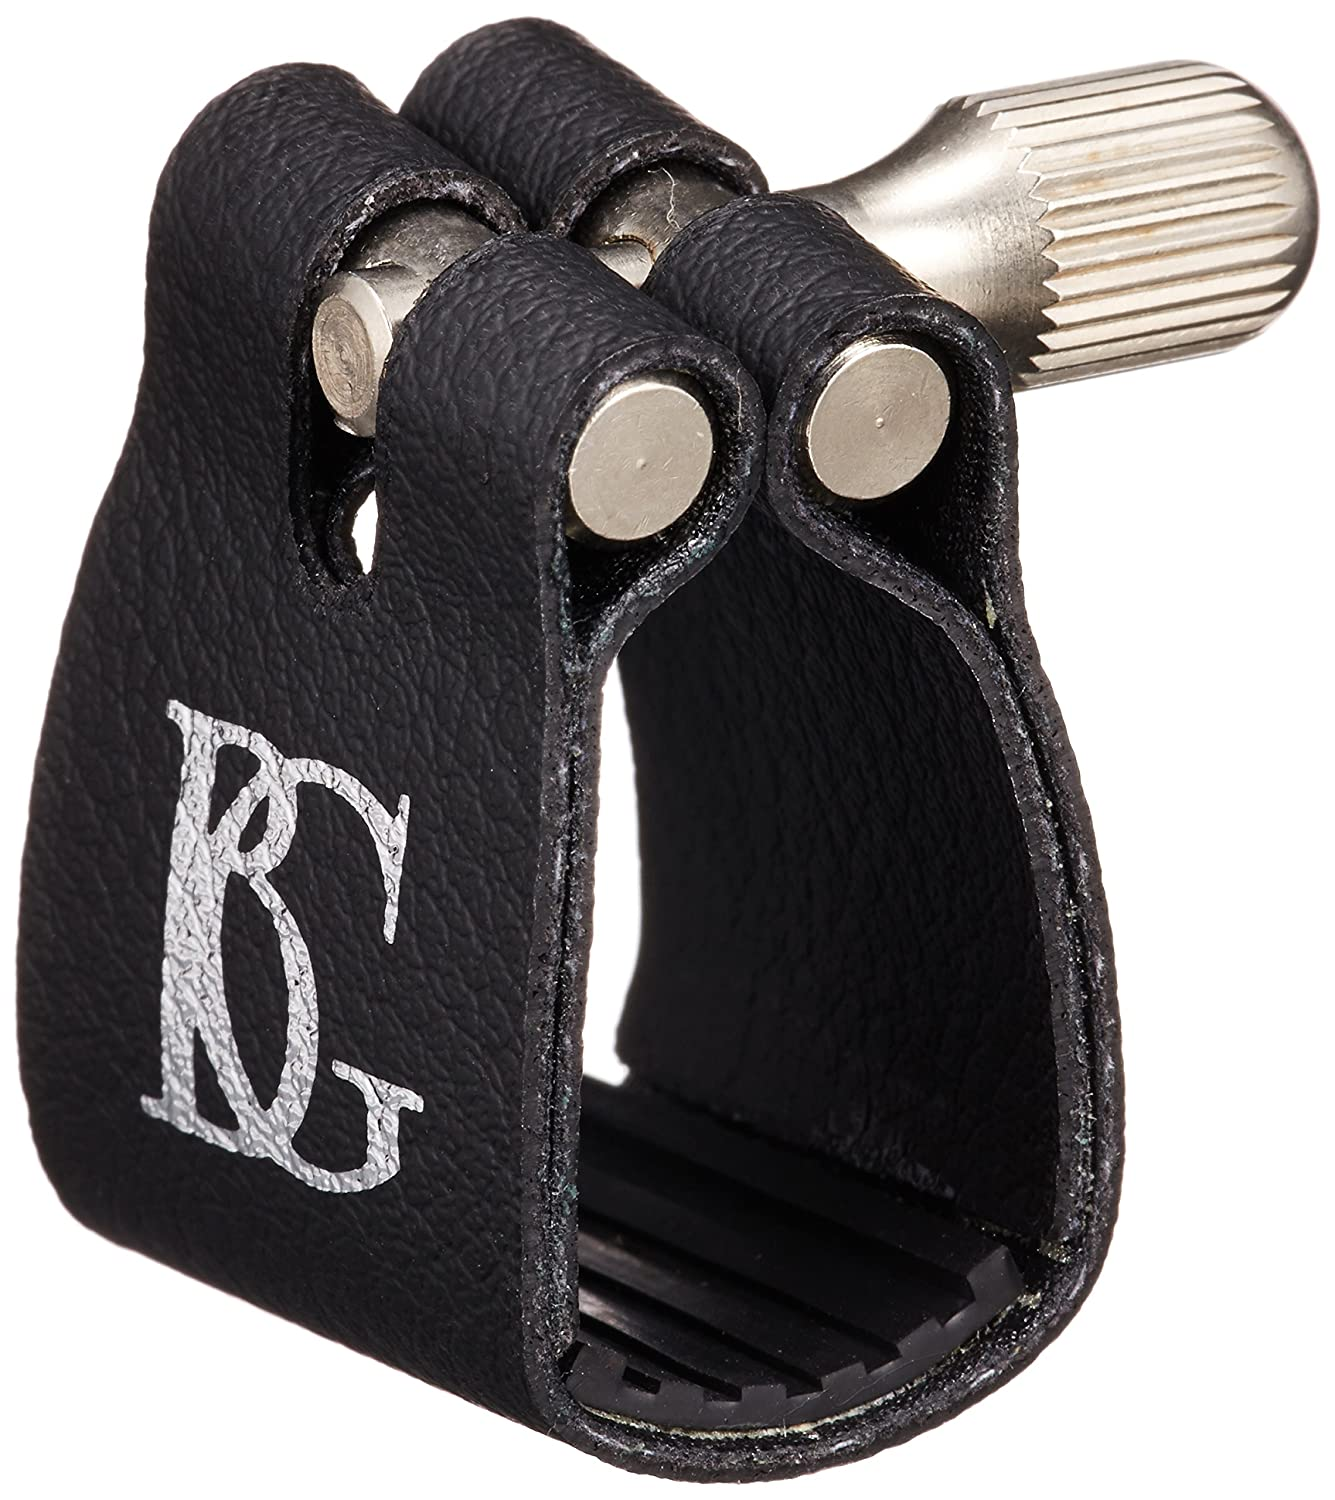 BG L6BG Standard Bb Clarinet Ligature with Cap 11642